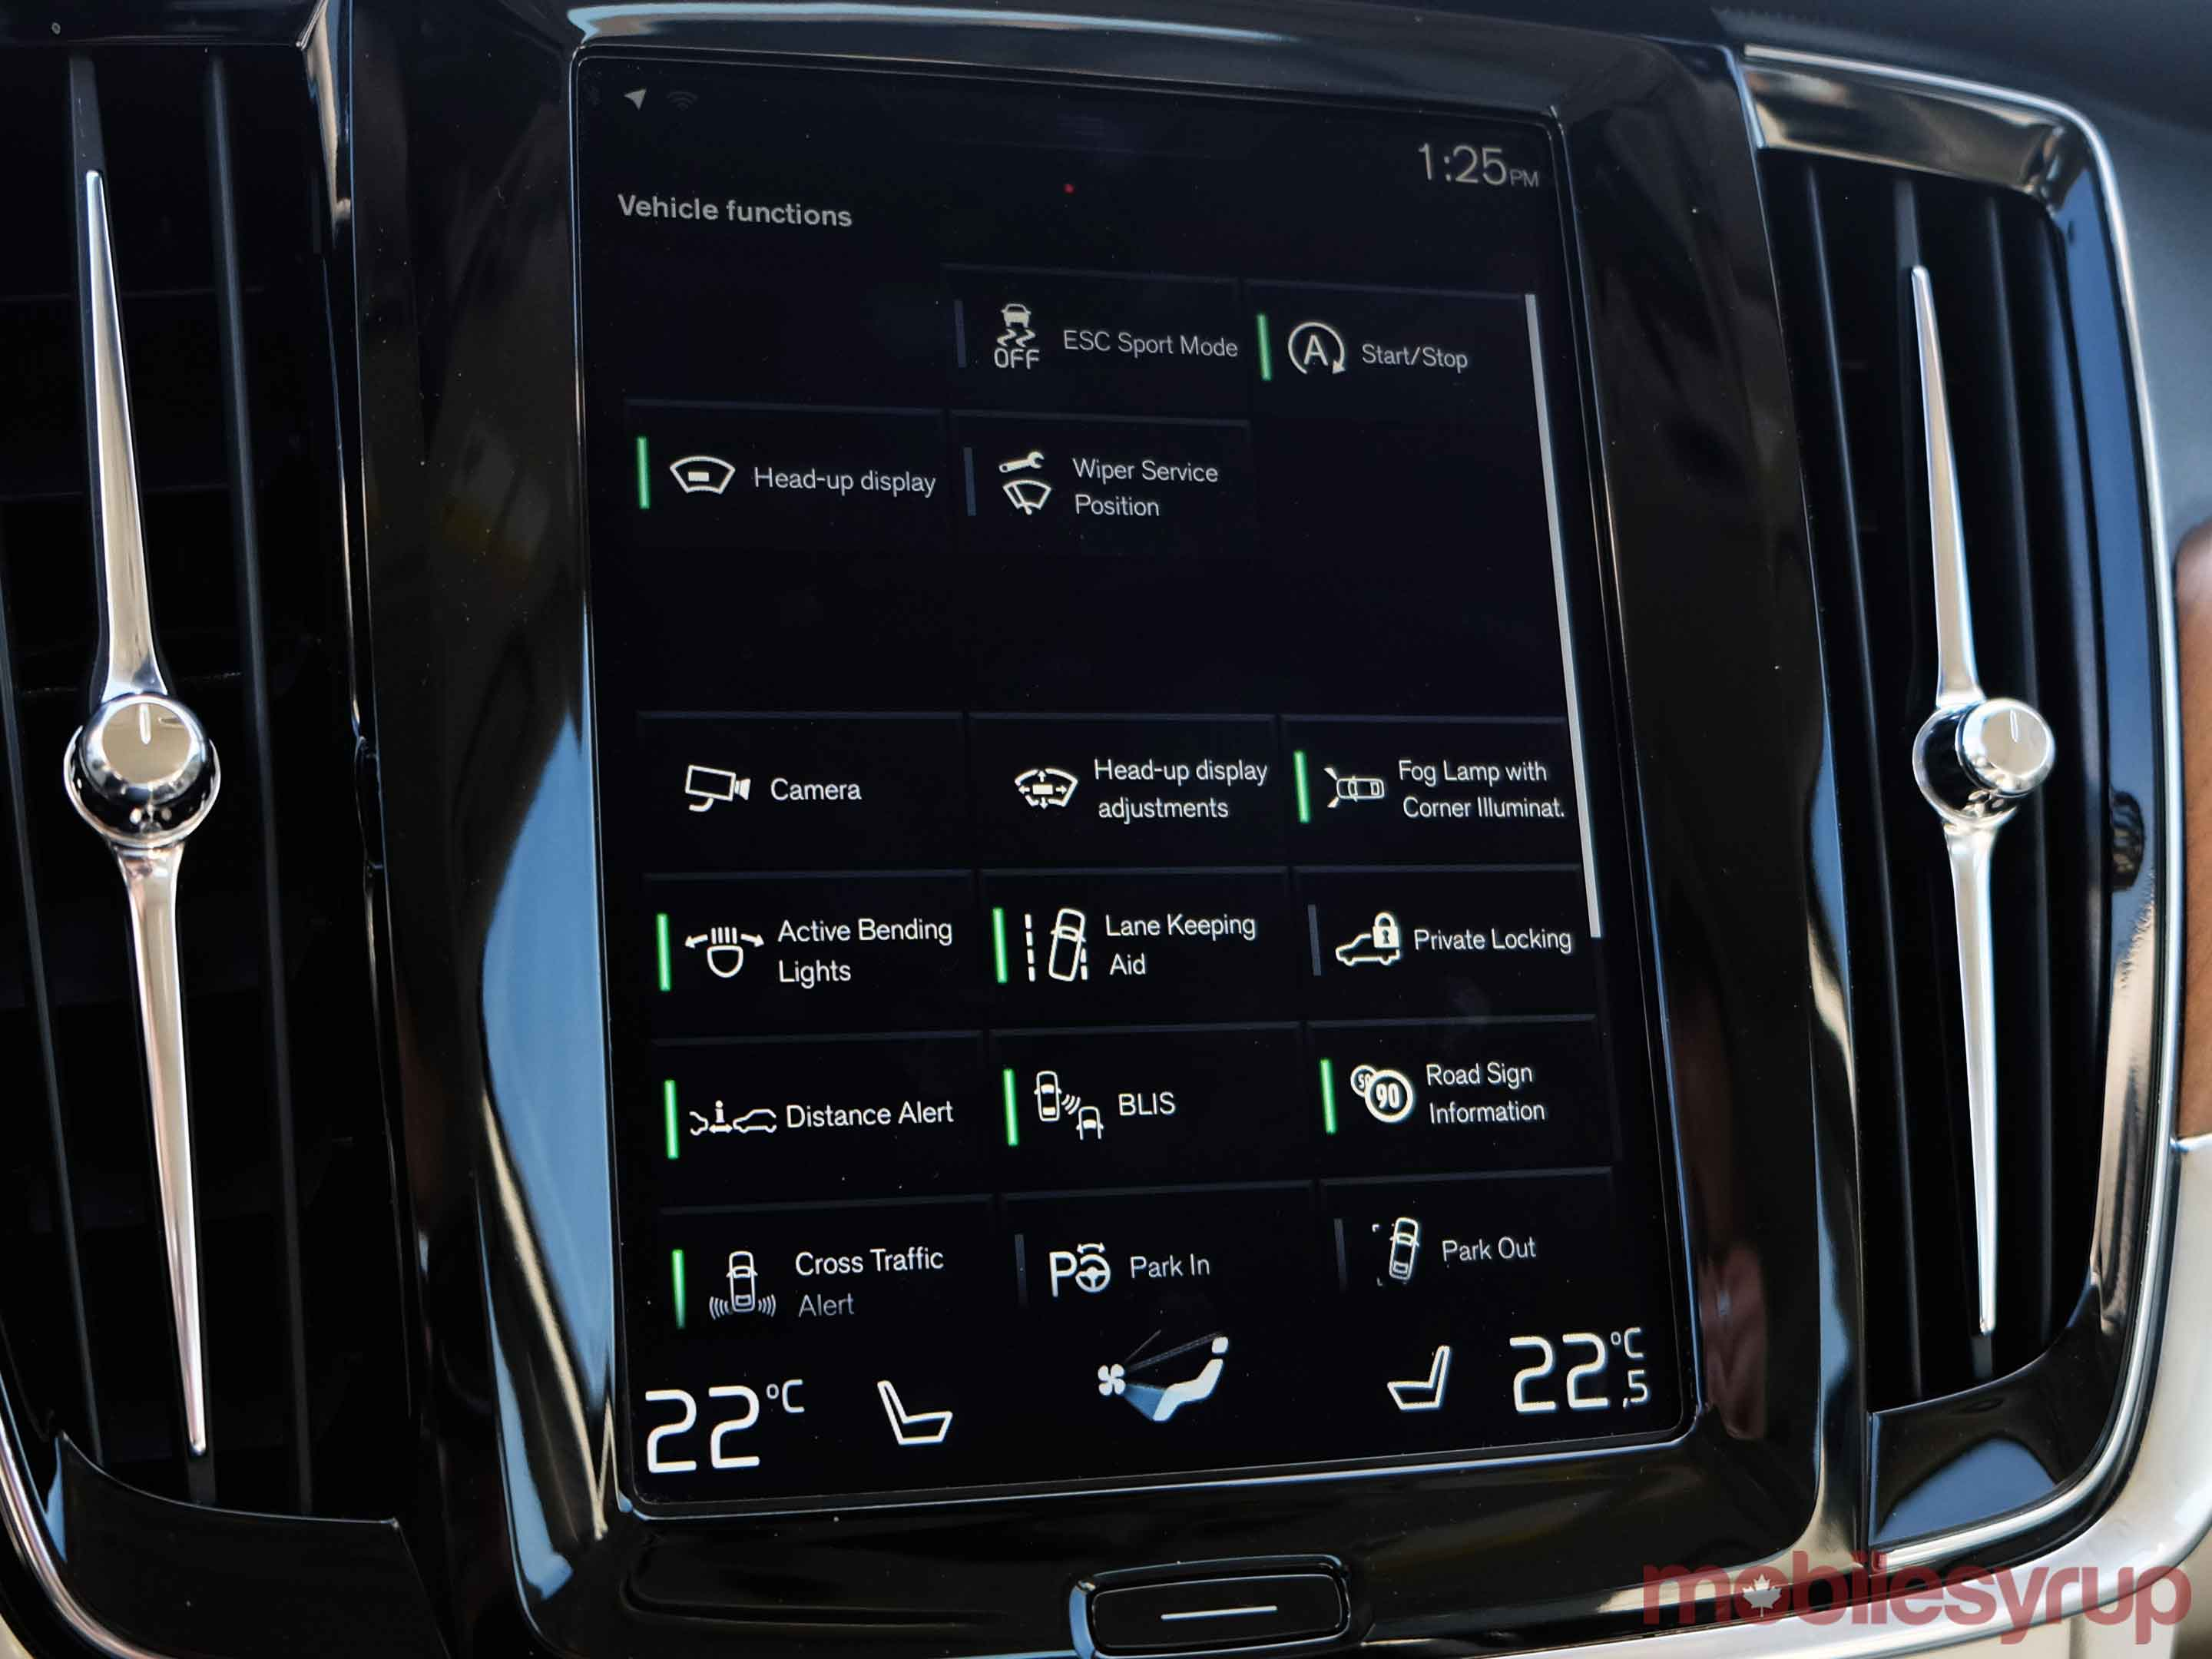 Volve S90 vehicle functions